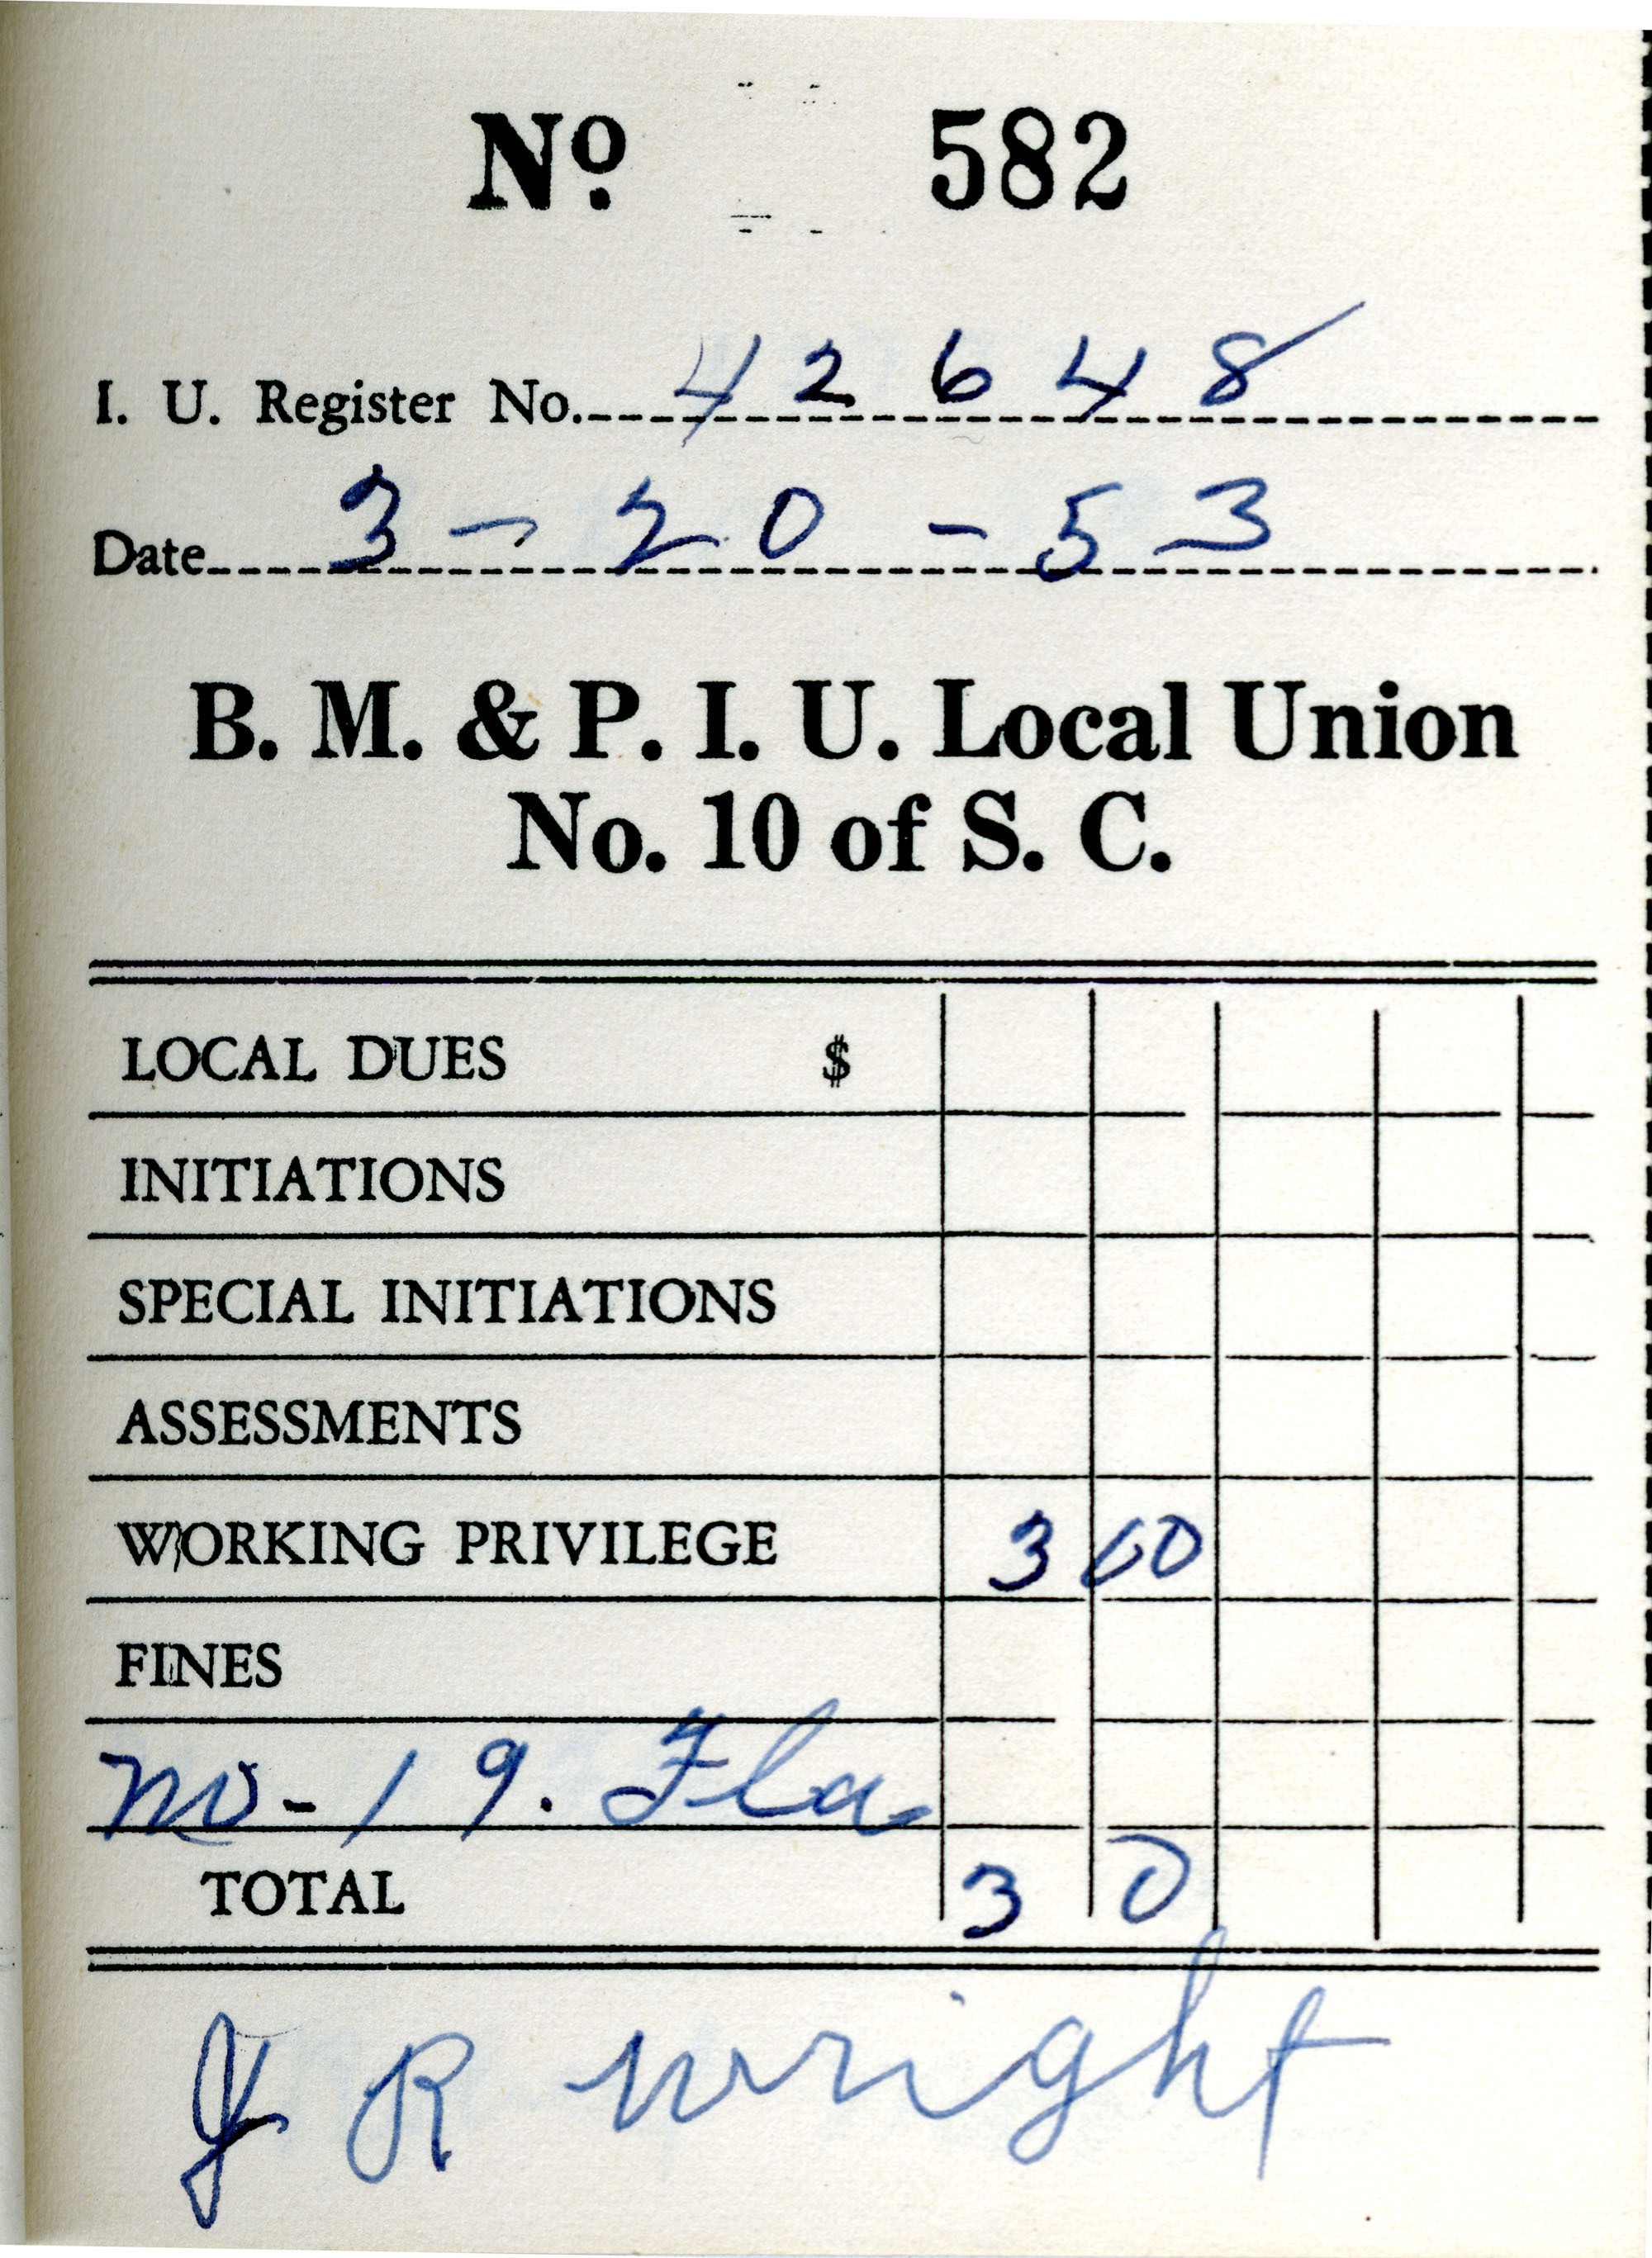 Receipt Book 1, Page 32